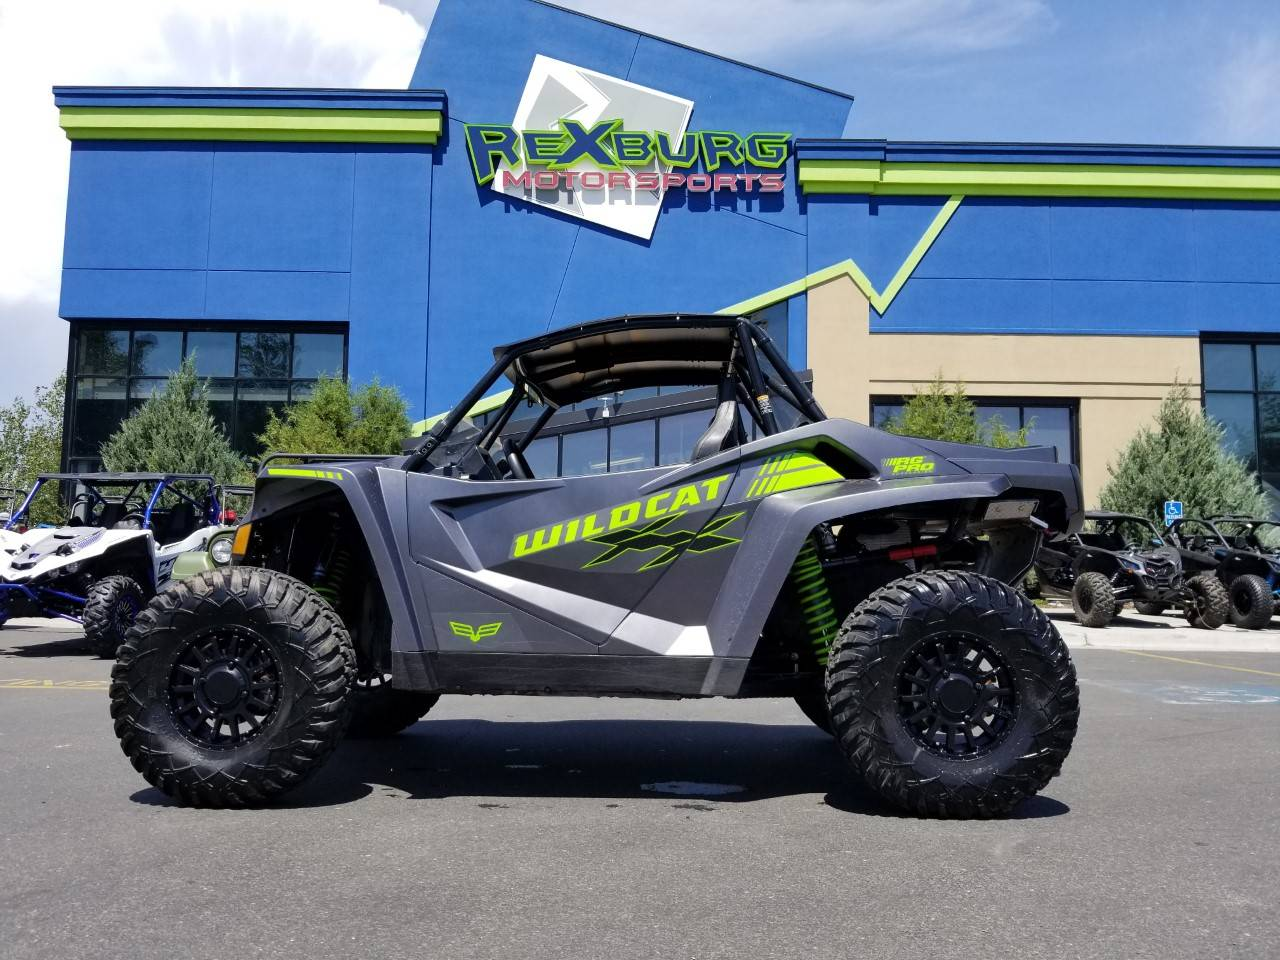 2018 Arctic Cat Wildcat XX in Rexburg, Idaho - Photo 1